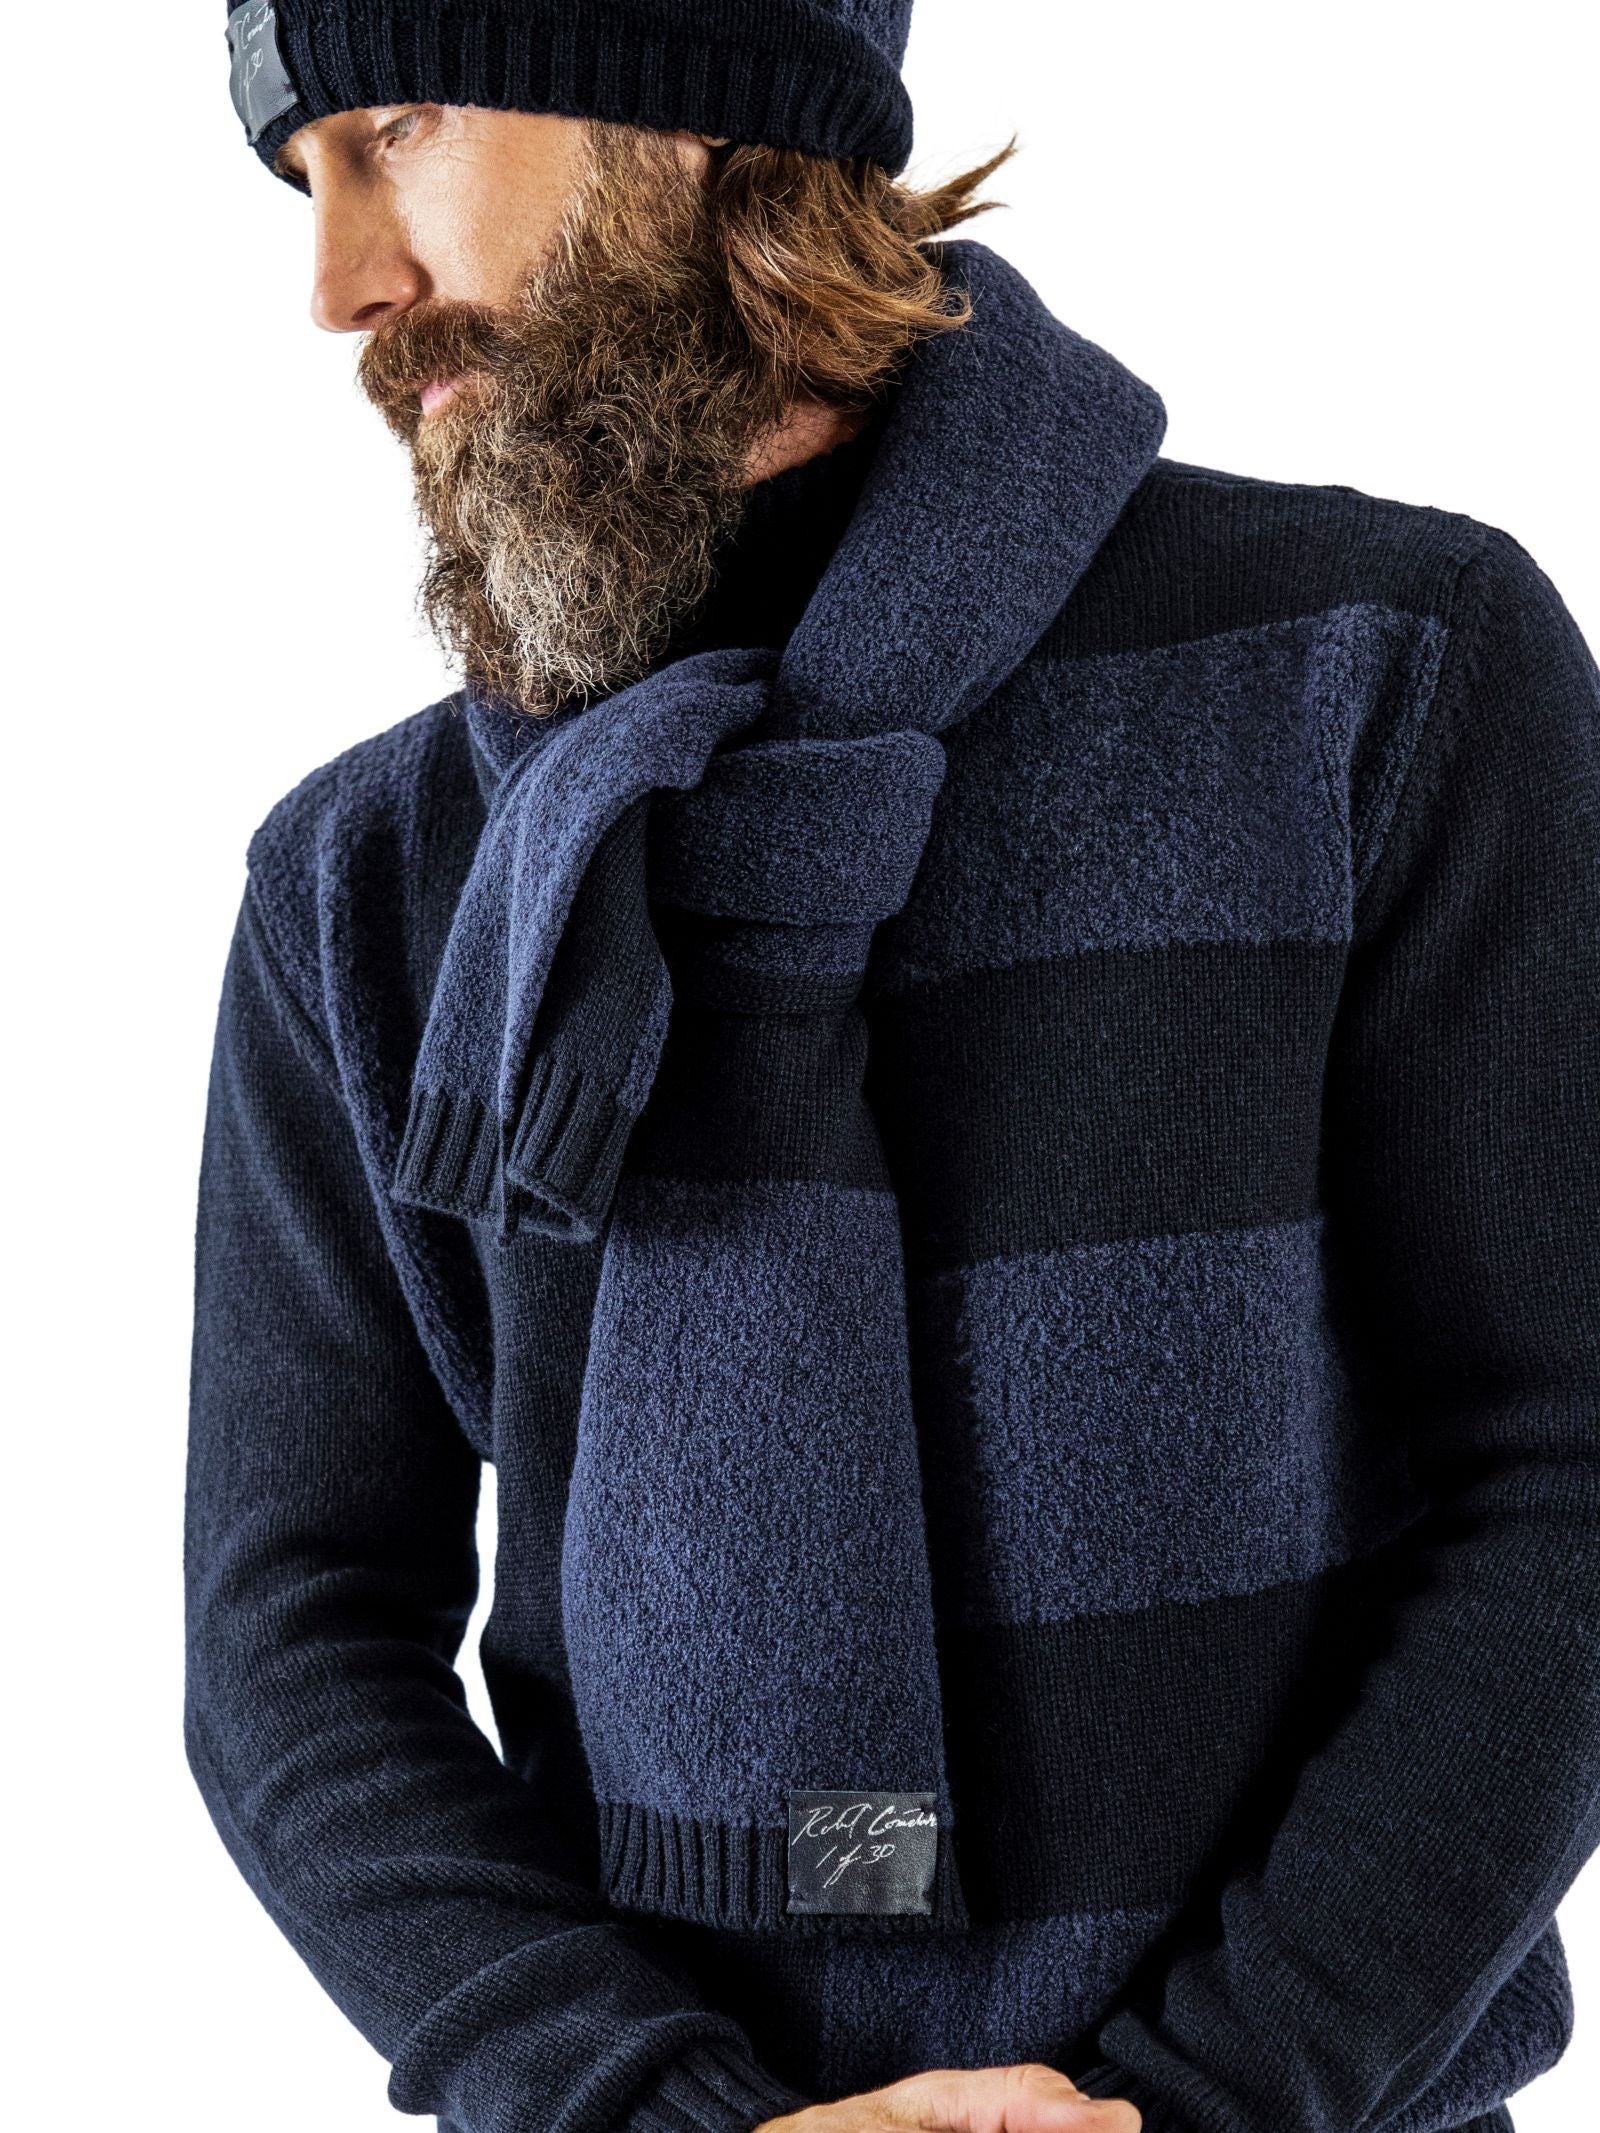 Accompanying scarf and sweater in 7-gauge cashmere